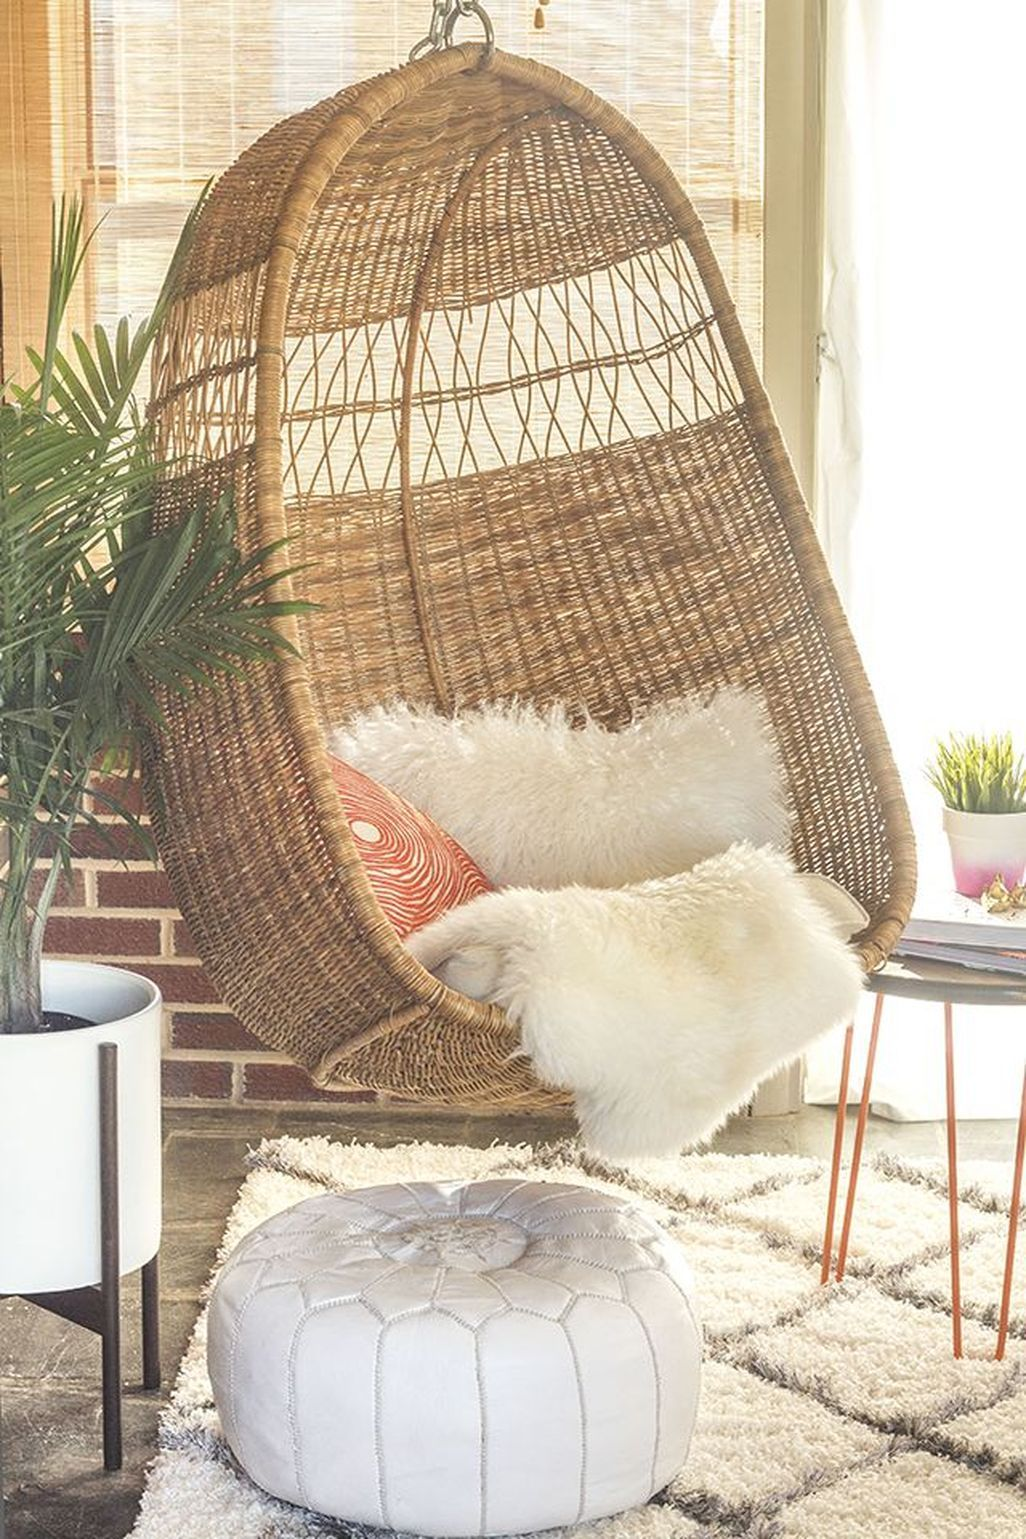 41 Modern Hanging Swing Chair Stand Indoor Decor Hanging